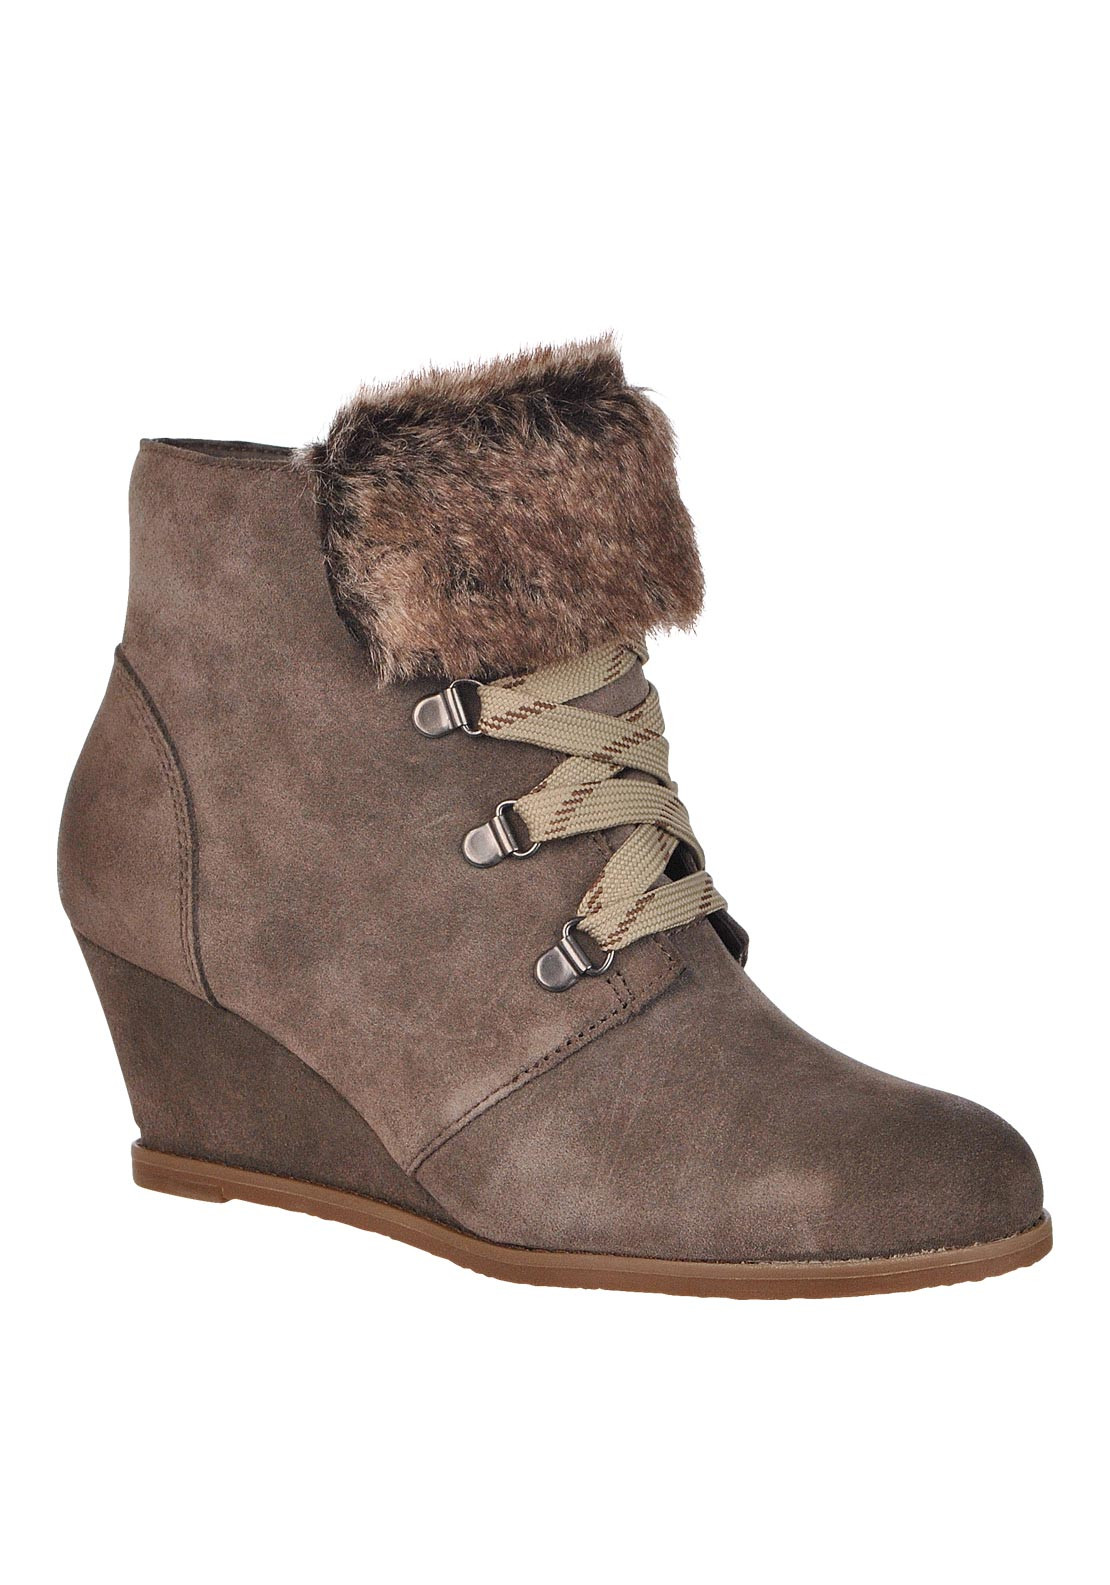 Clarks Womens Lumieres Wedge Boot, Brown